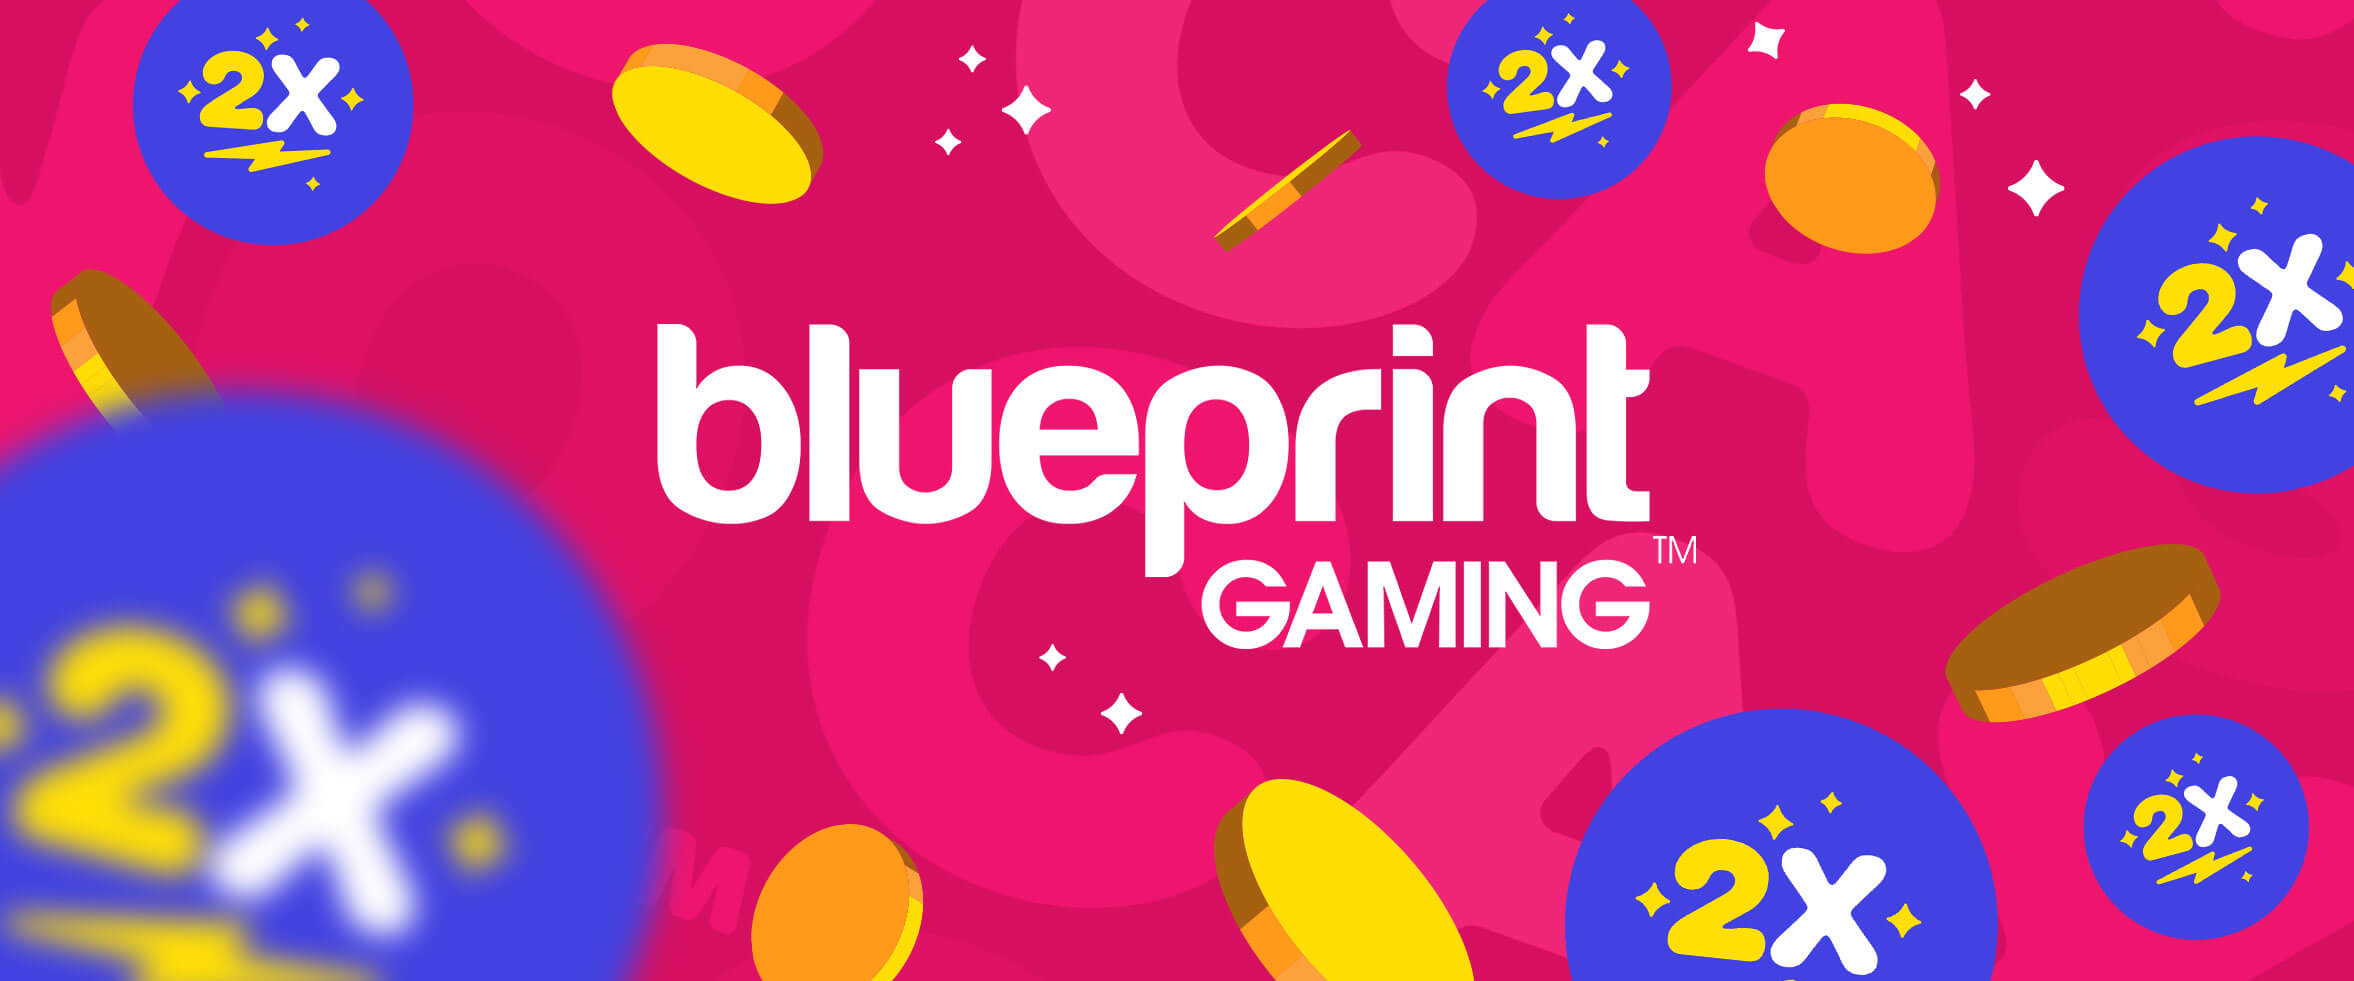 Try out Blueprint Gaming with Double Speed